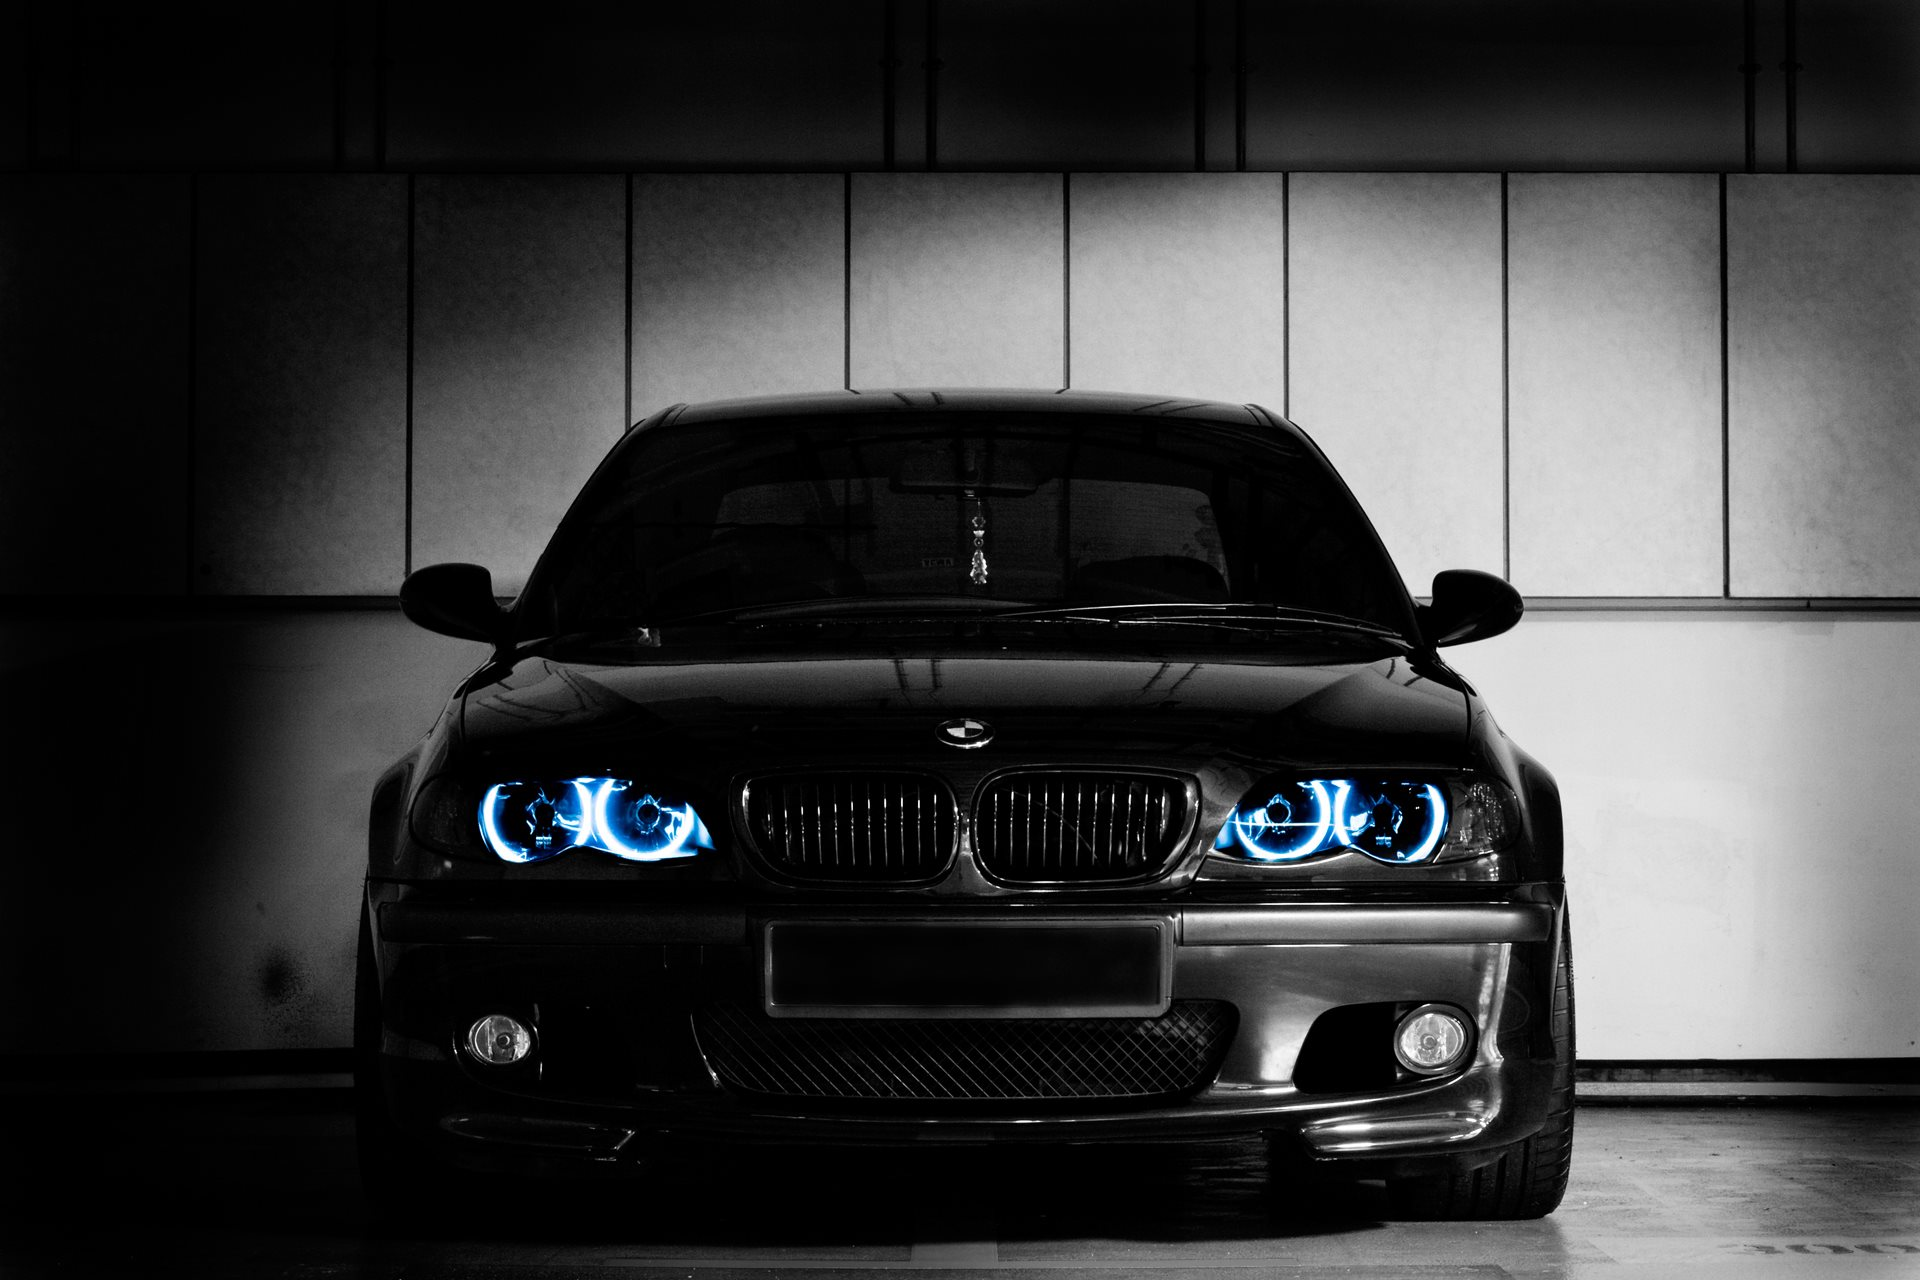 bmw black in dark light